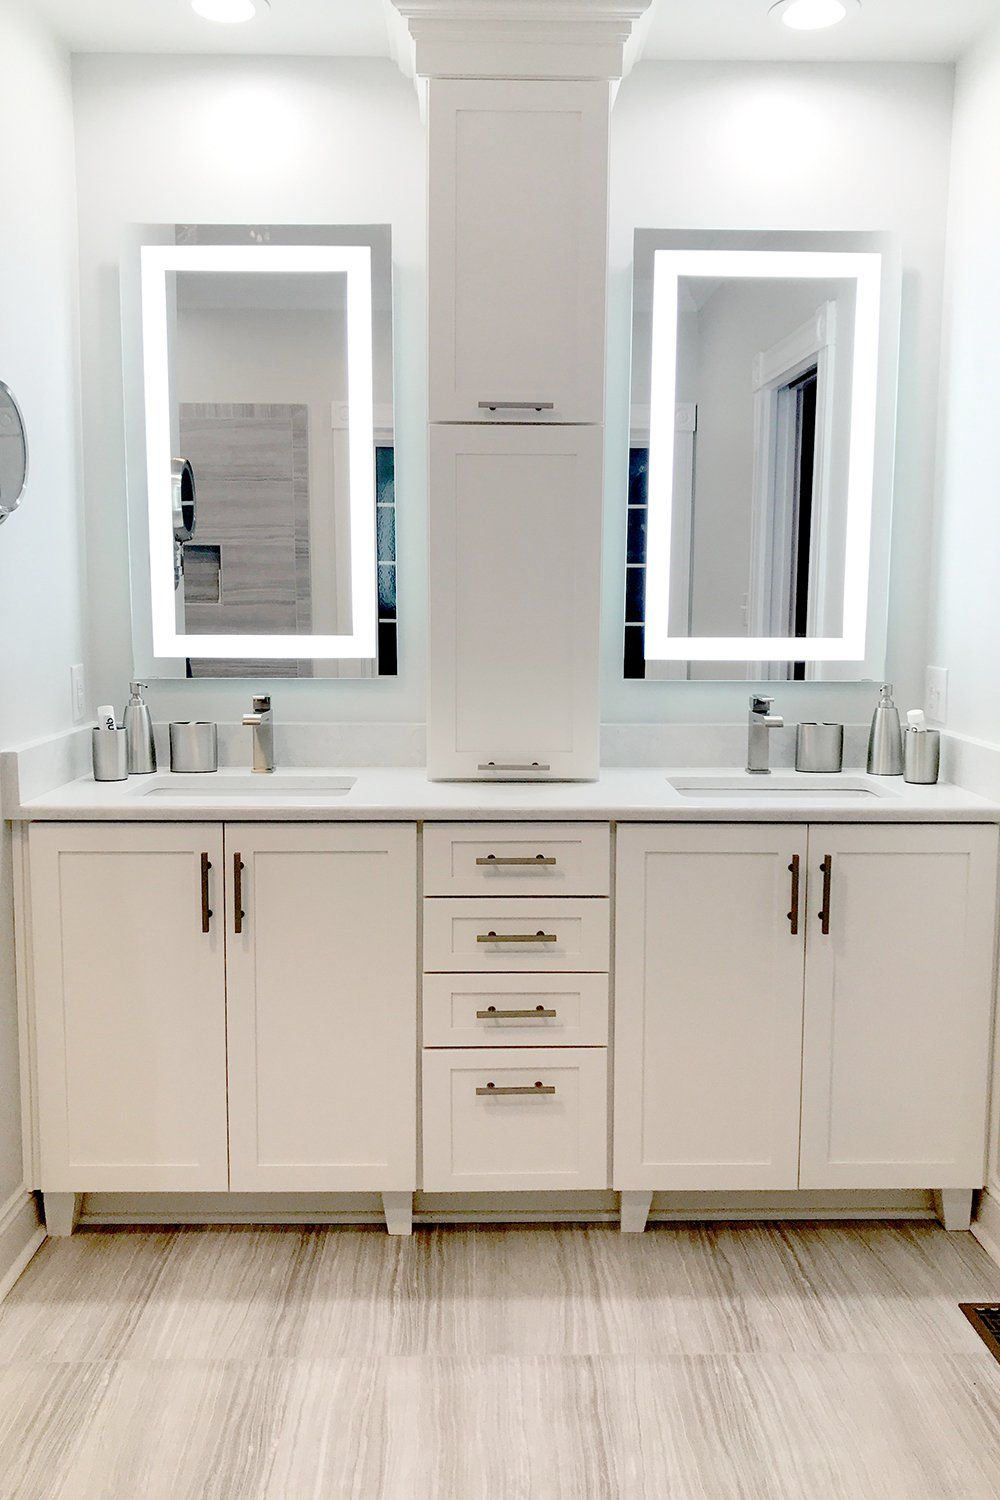 Front Lighted Led Bathroom Vanity Mirror 28 Wide X 48 Tall Rectangular Wall Mounted In 2020 Bathroom Vanity Bathroom Design Bathroom Styling